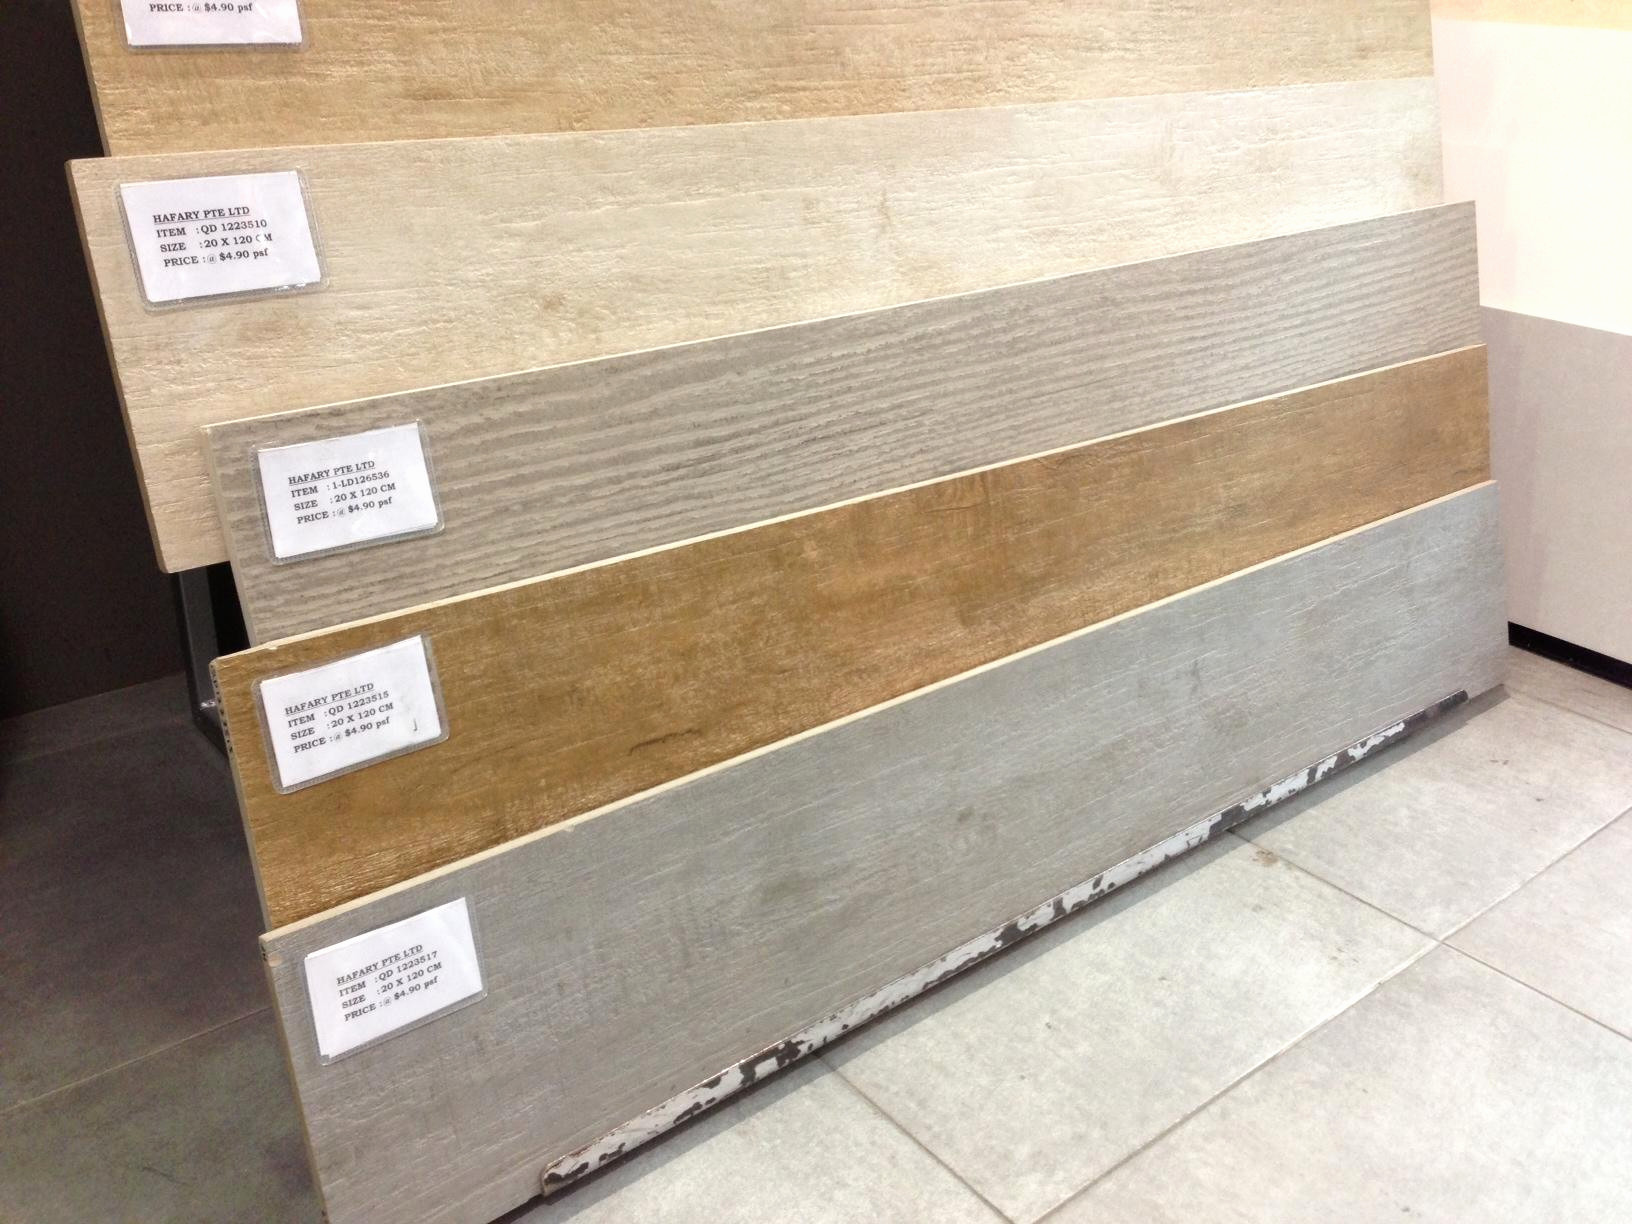 hardwood flooring at the home depot of home depot ceramic tile elegant hexagon tile flooring the home depot inside flooring marrazzi gunstock 60 lovely stock of home depot ceramic tile home depot ceramic tile lovely home design ceramic